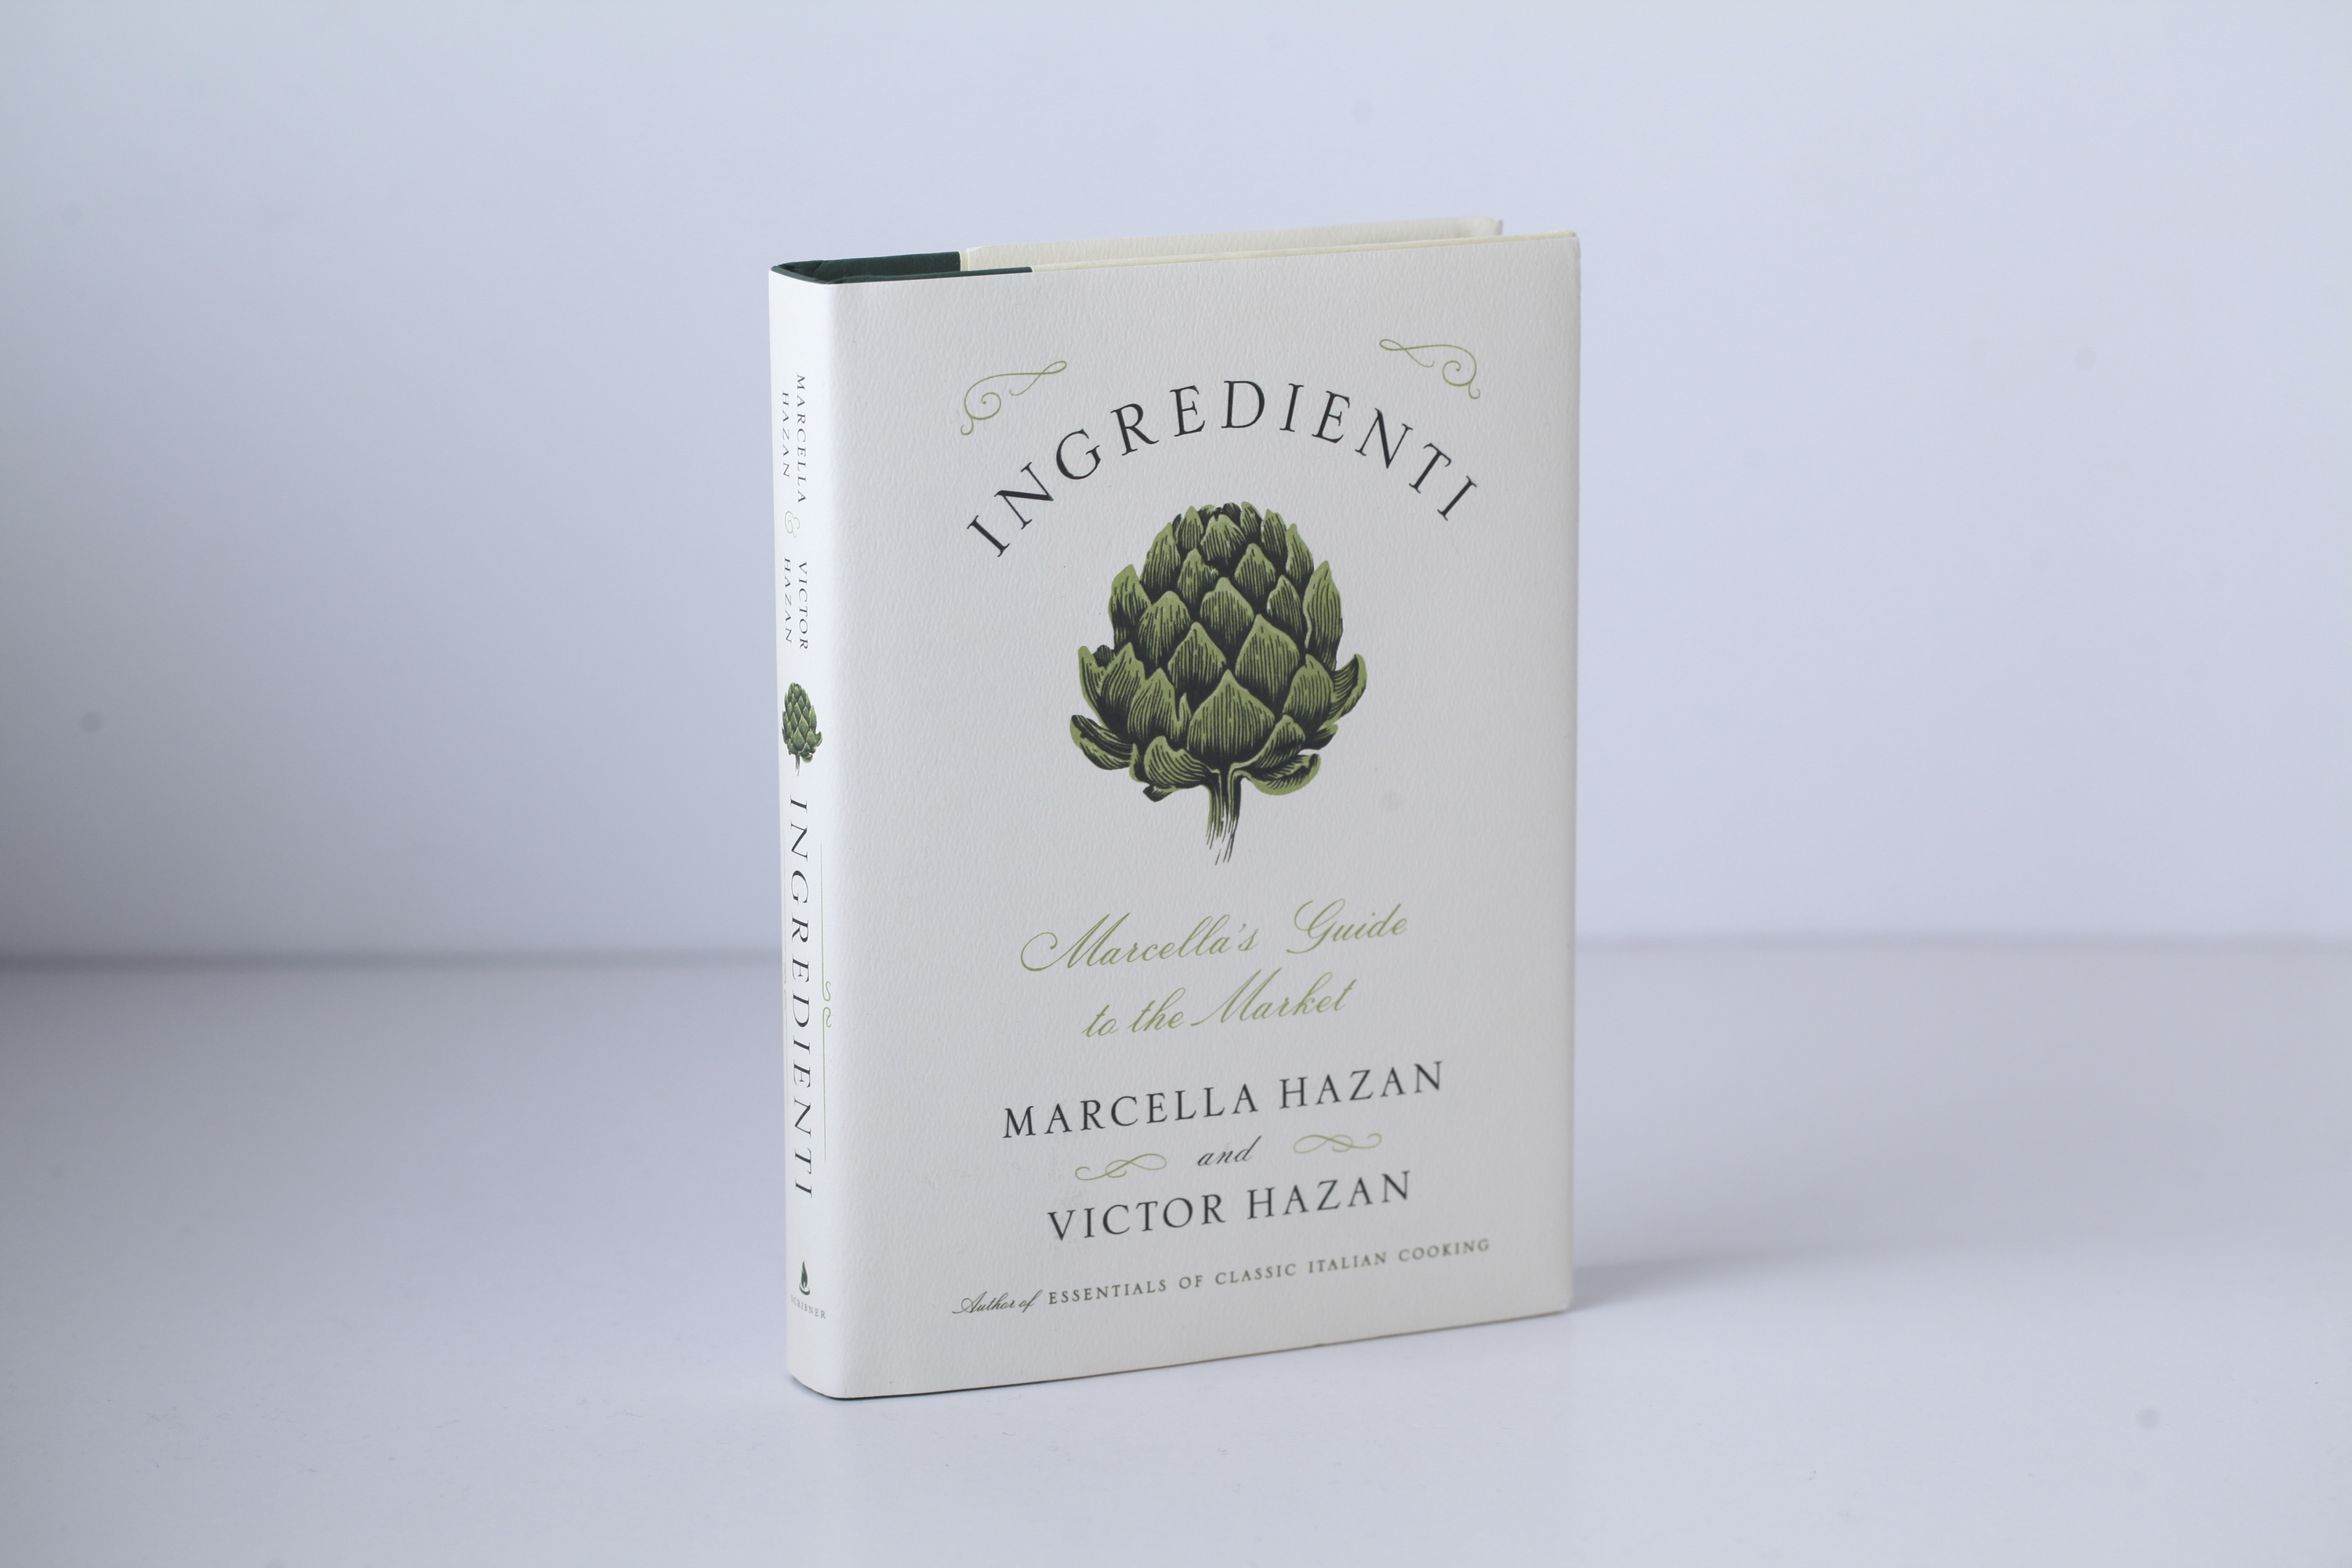 'Ingredienti: Marcella's Guide to the Market' by Marcella Hazan and Victor Hazan